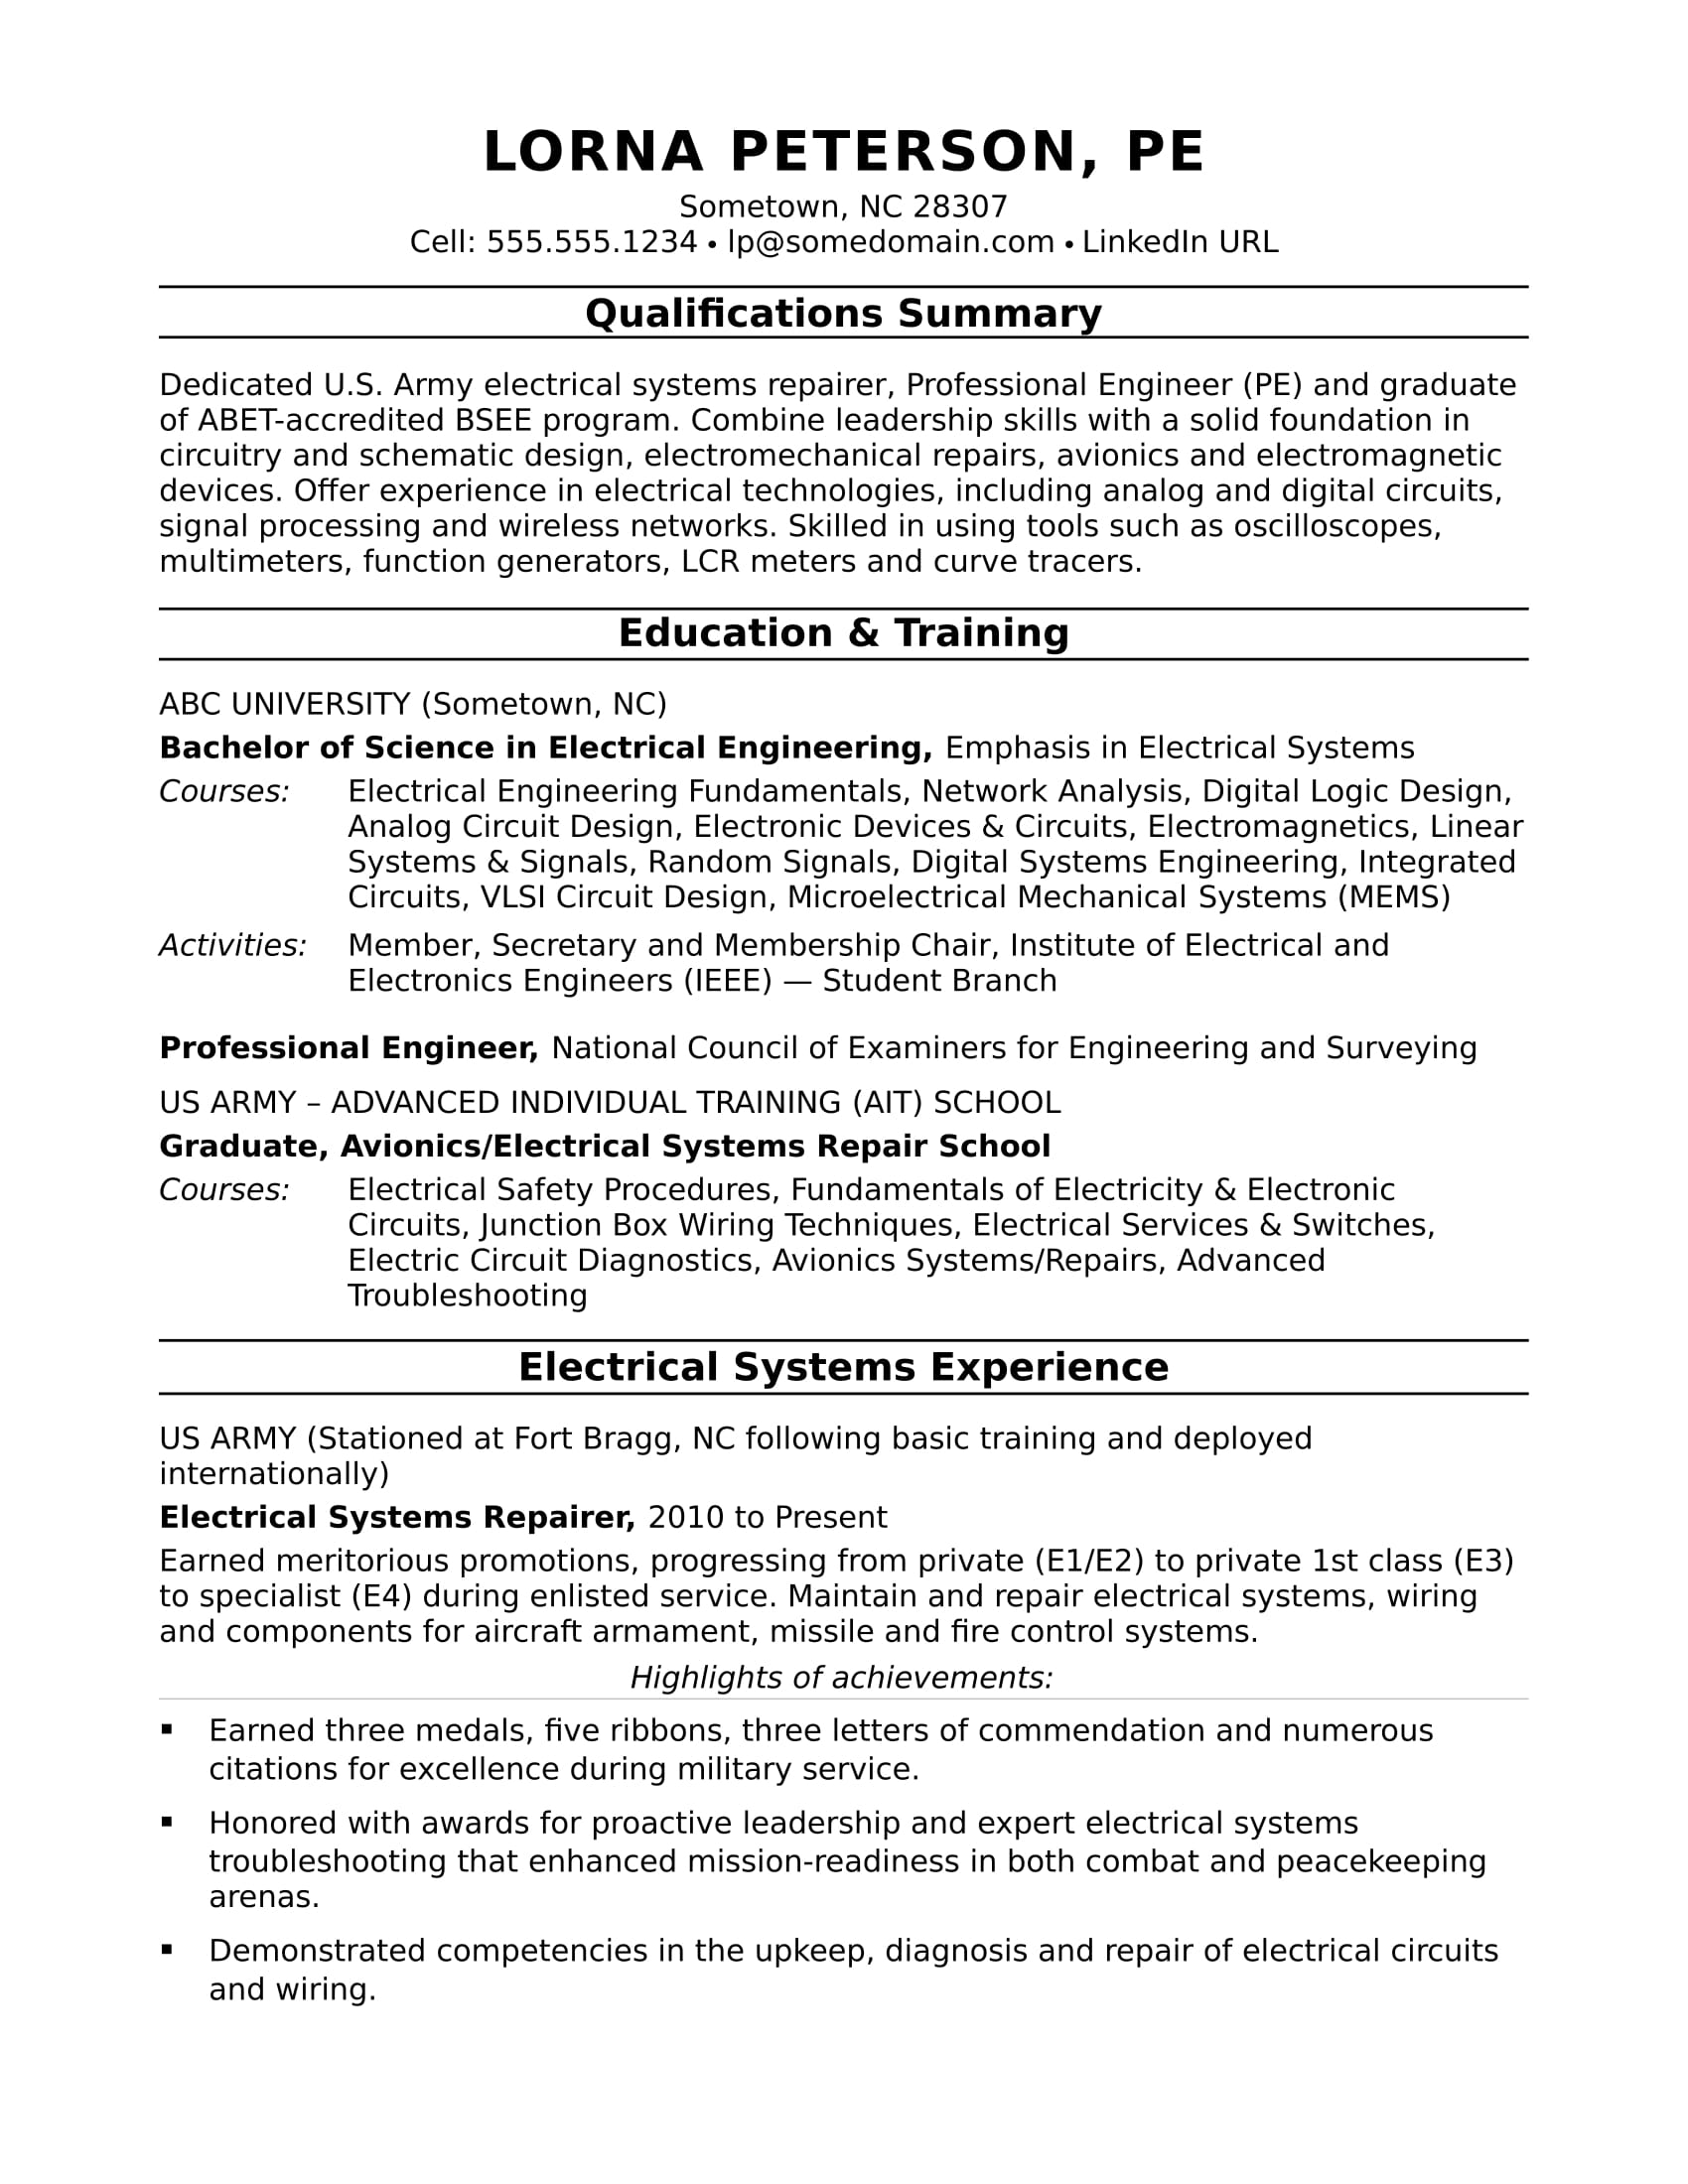 Sample resume for a midlevel electrical engineer for Sample resume of an electrical engineer